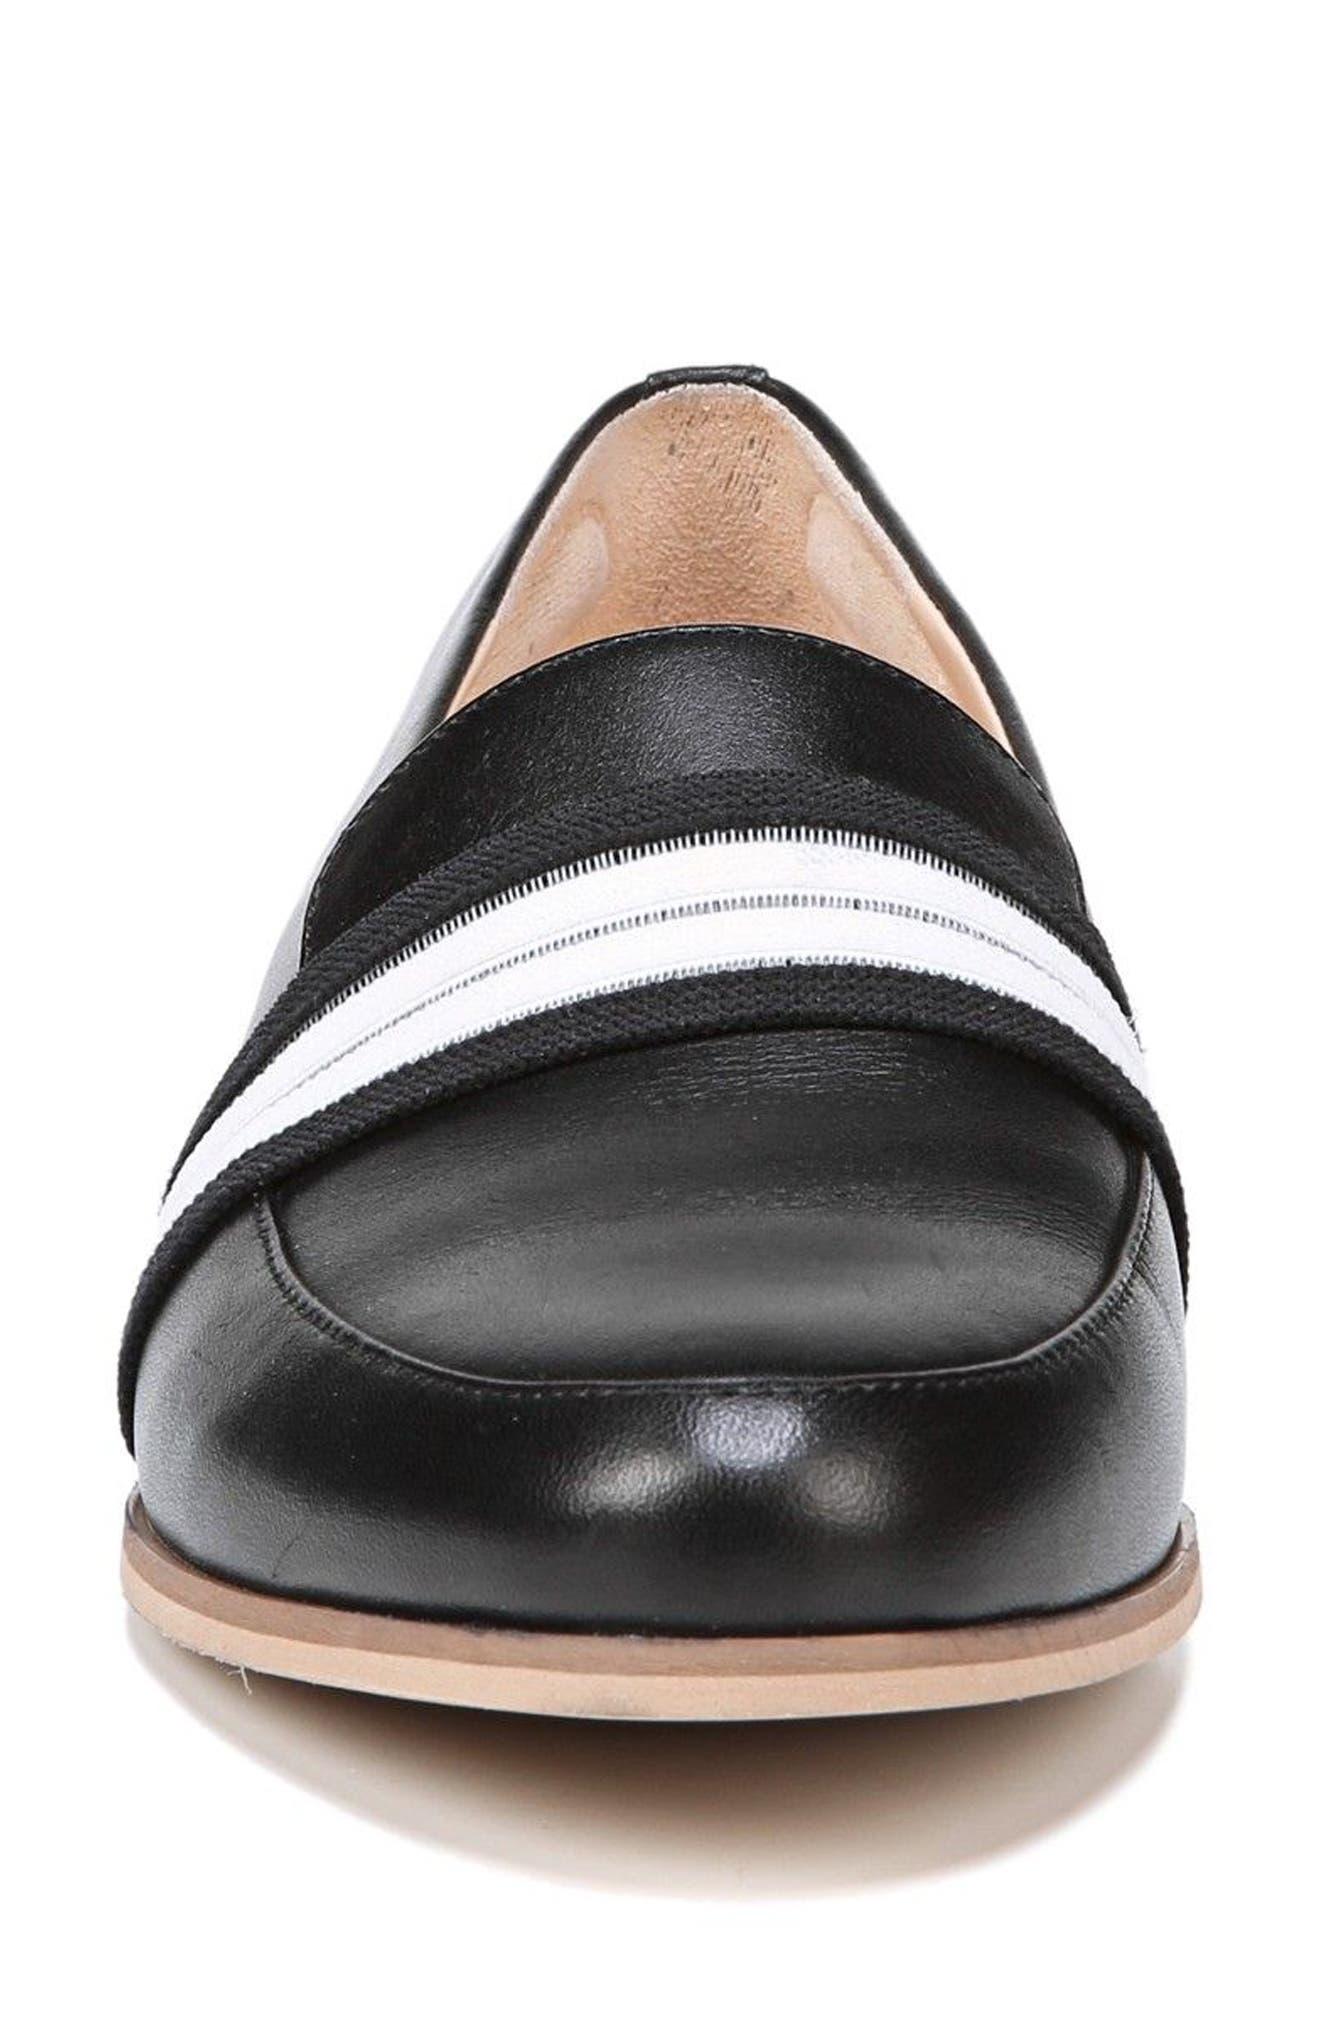 Everett Band Loafer,                             Alternate thumbnail 4, color,                             001